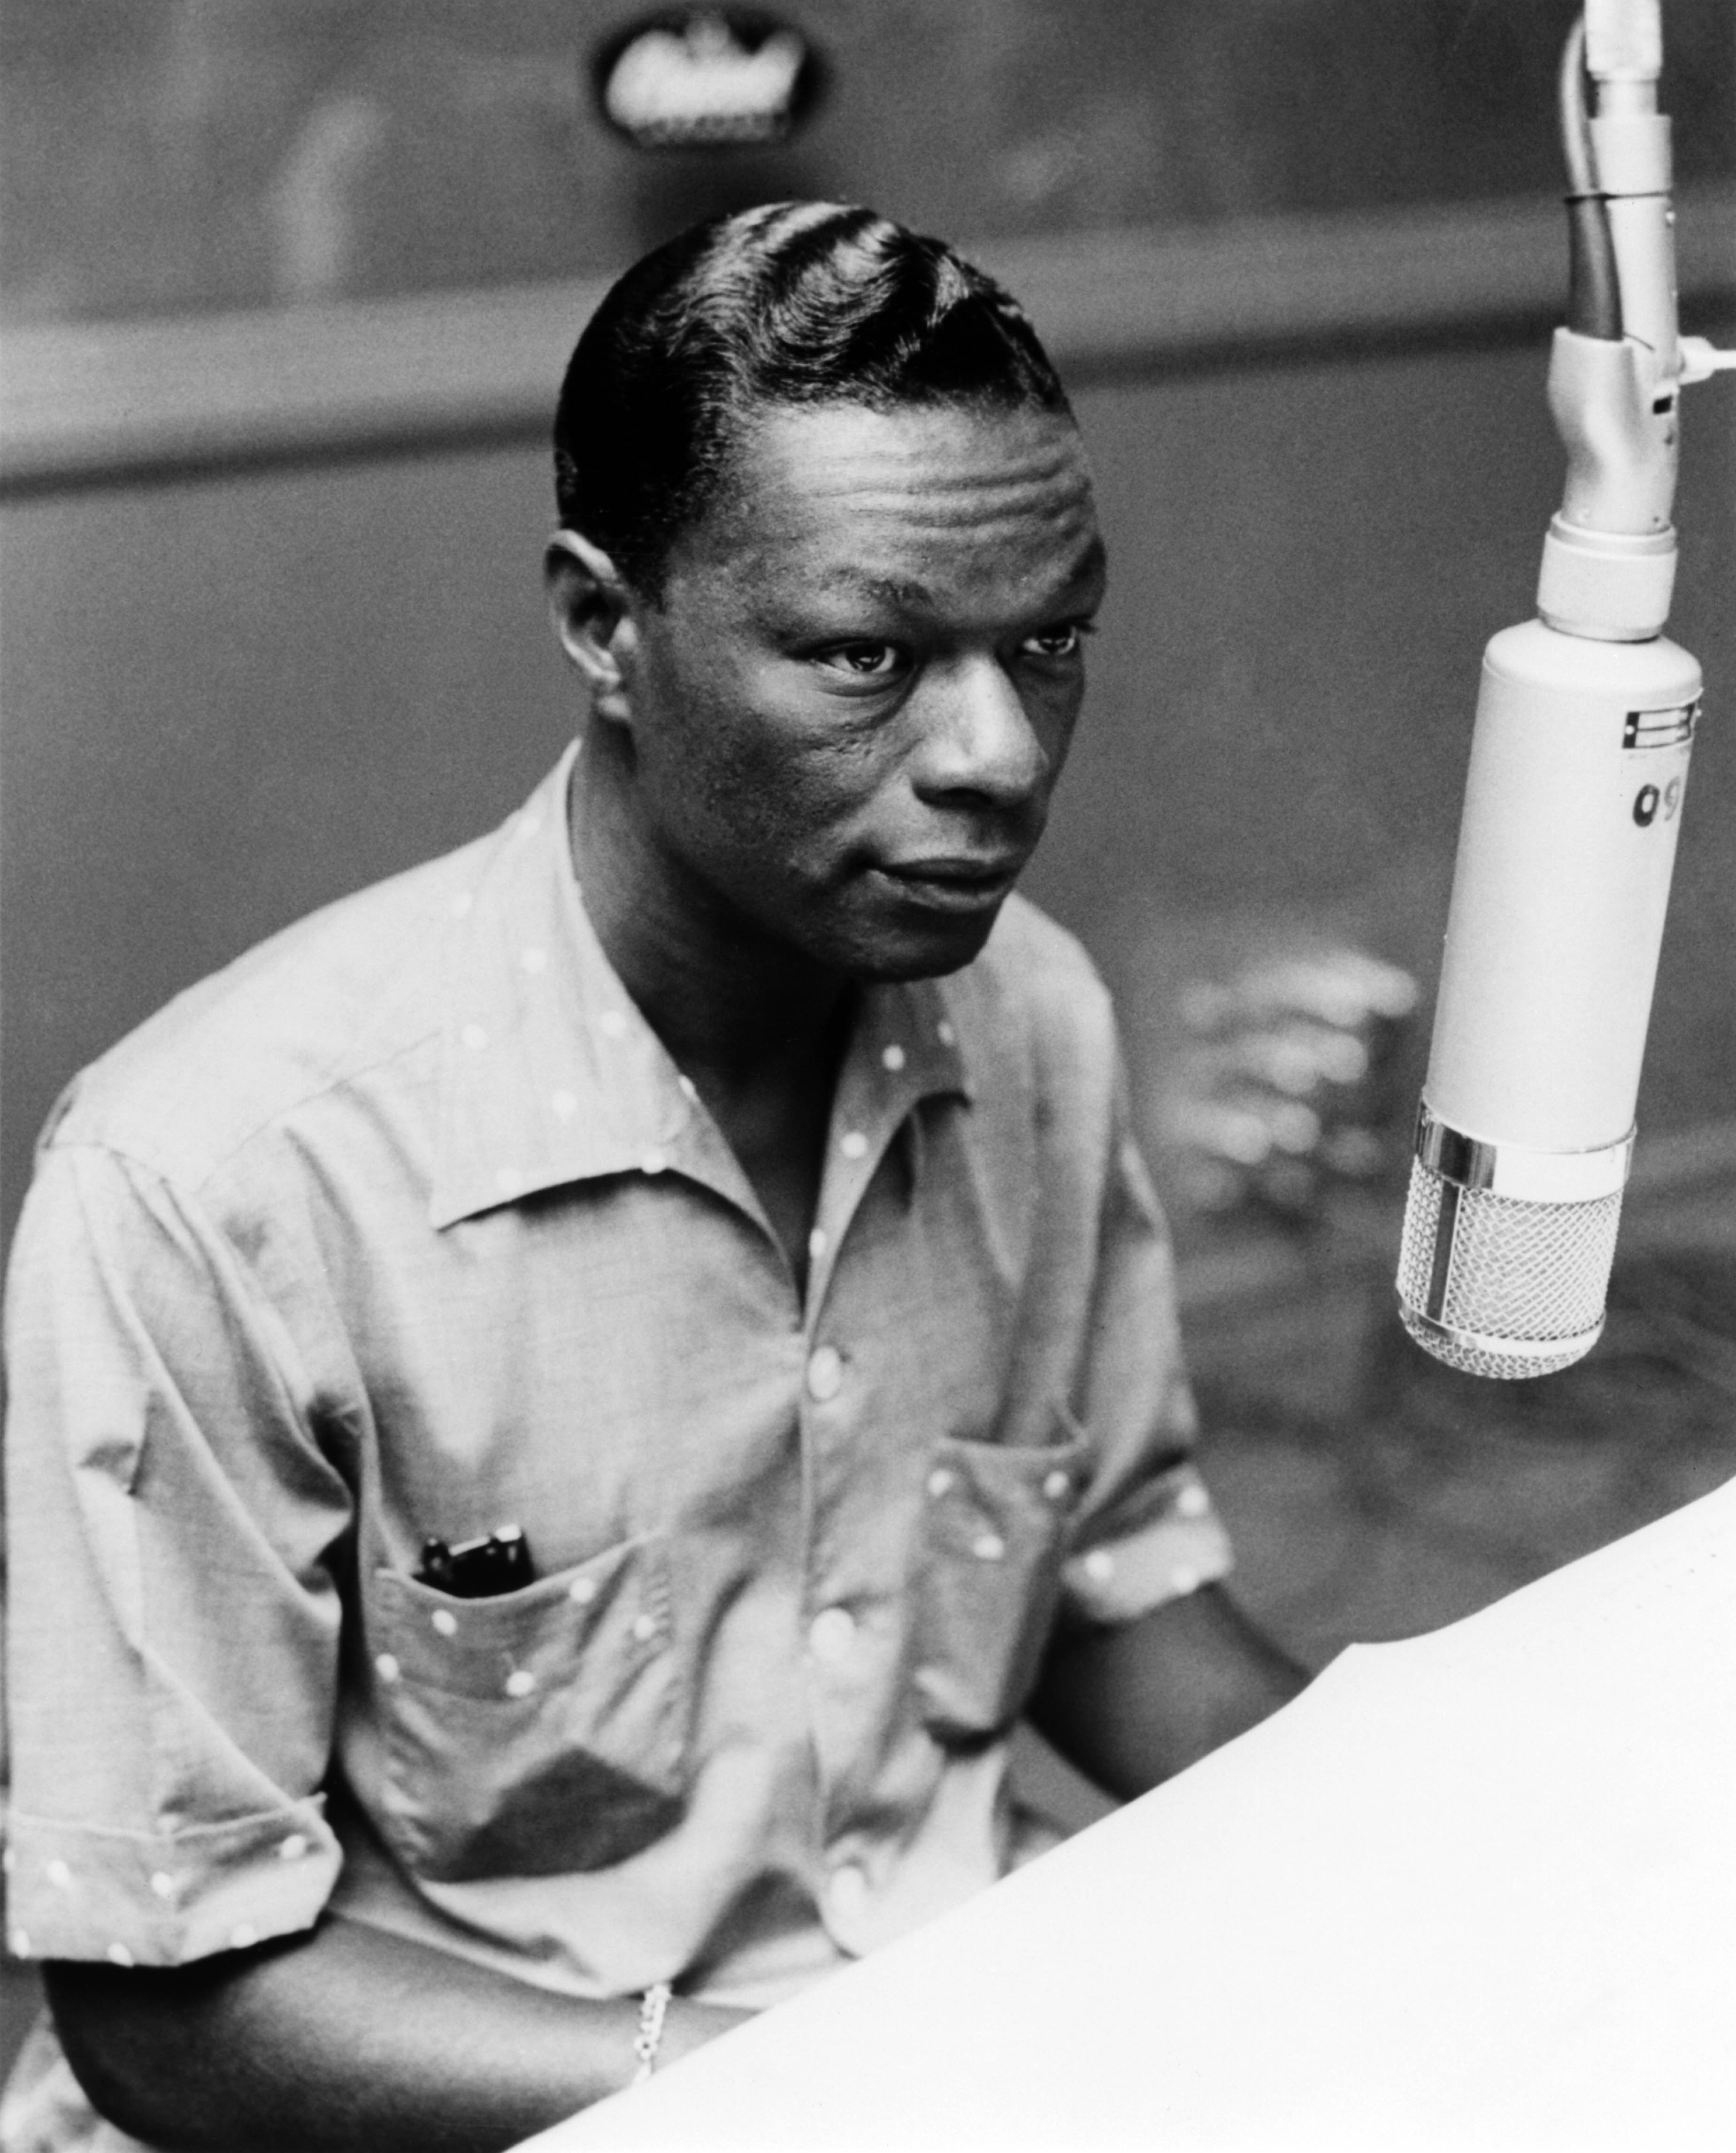 Photo of Nat King COLE; Nat King Cole playing the piano in the recording studio   Photo: Getty Images